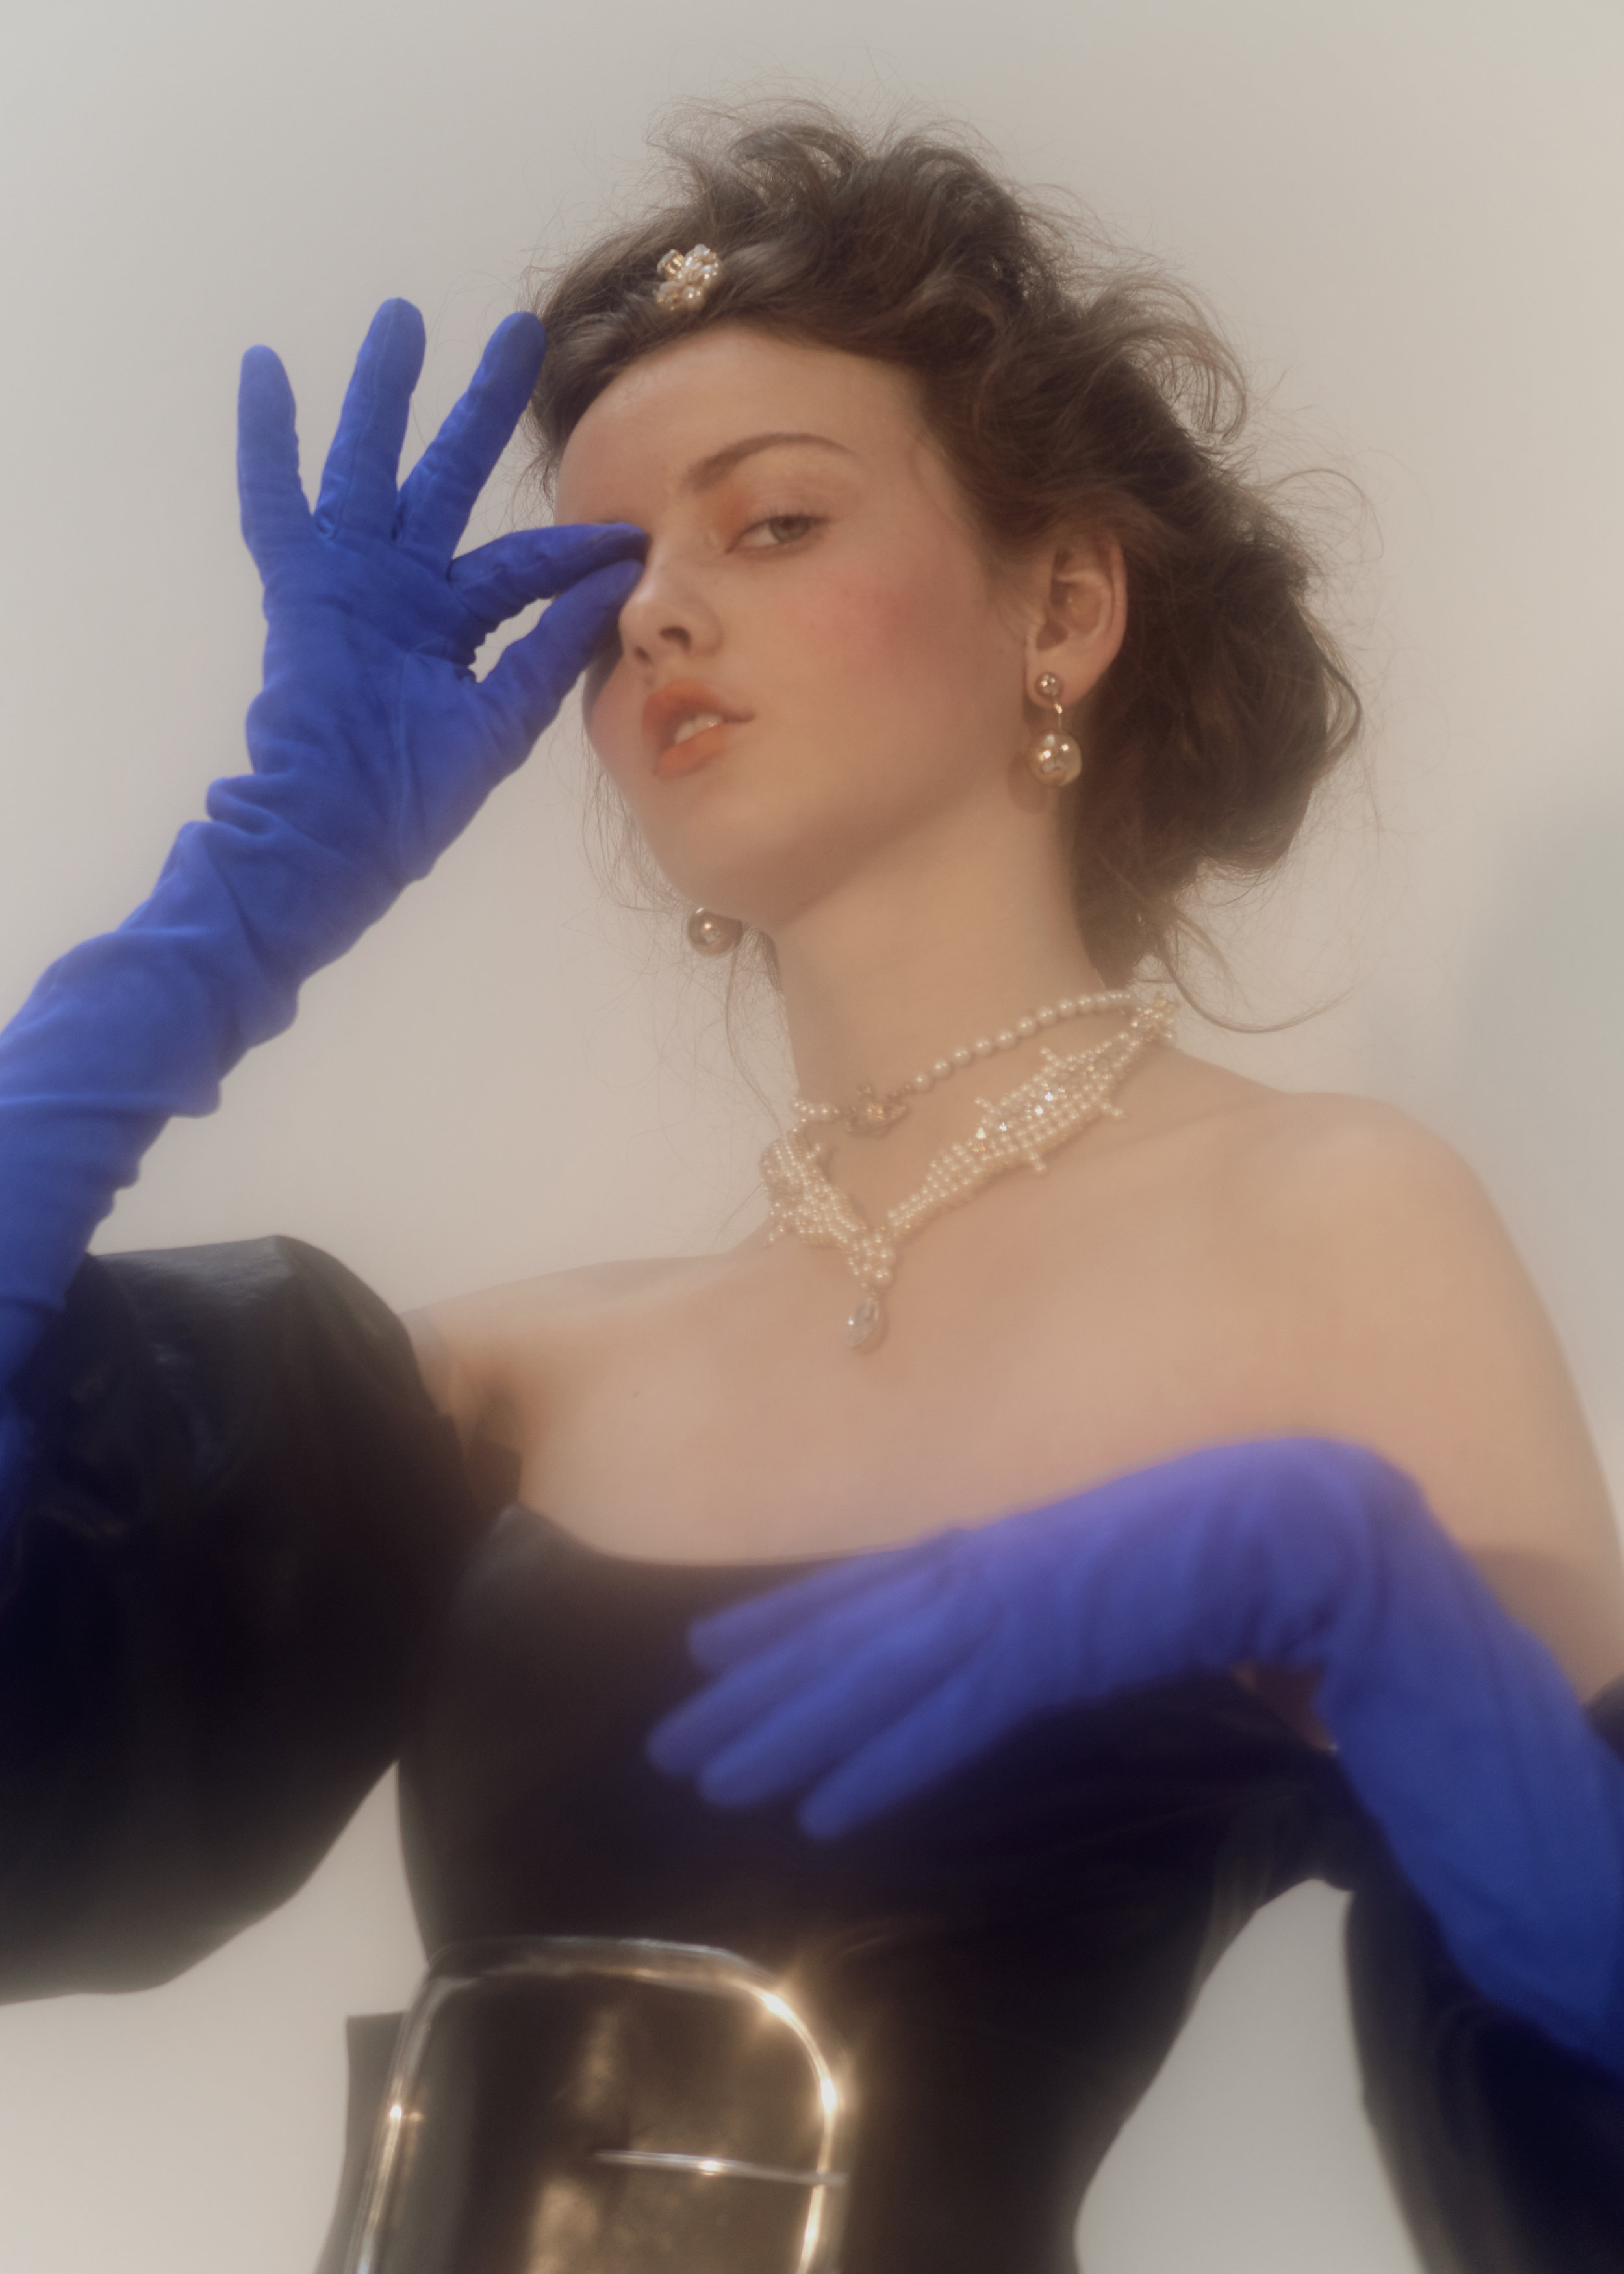 APART online_Lady-with-gloves_015.jpg